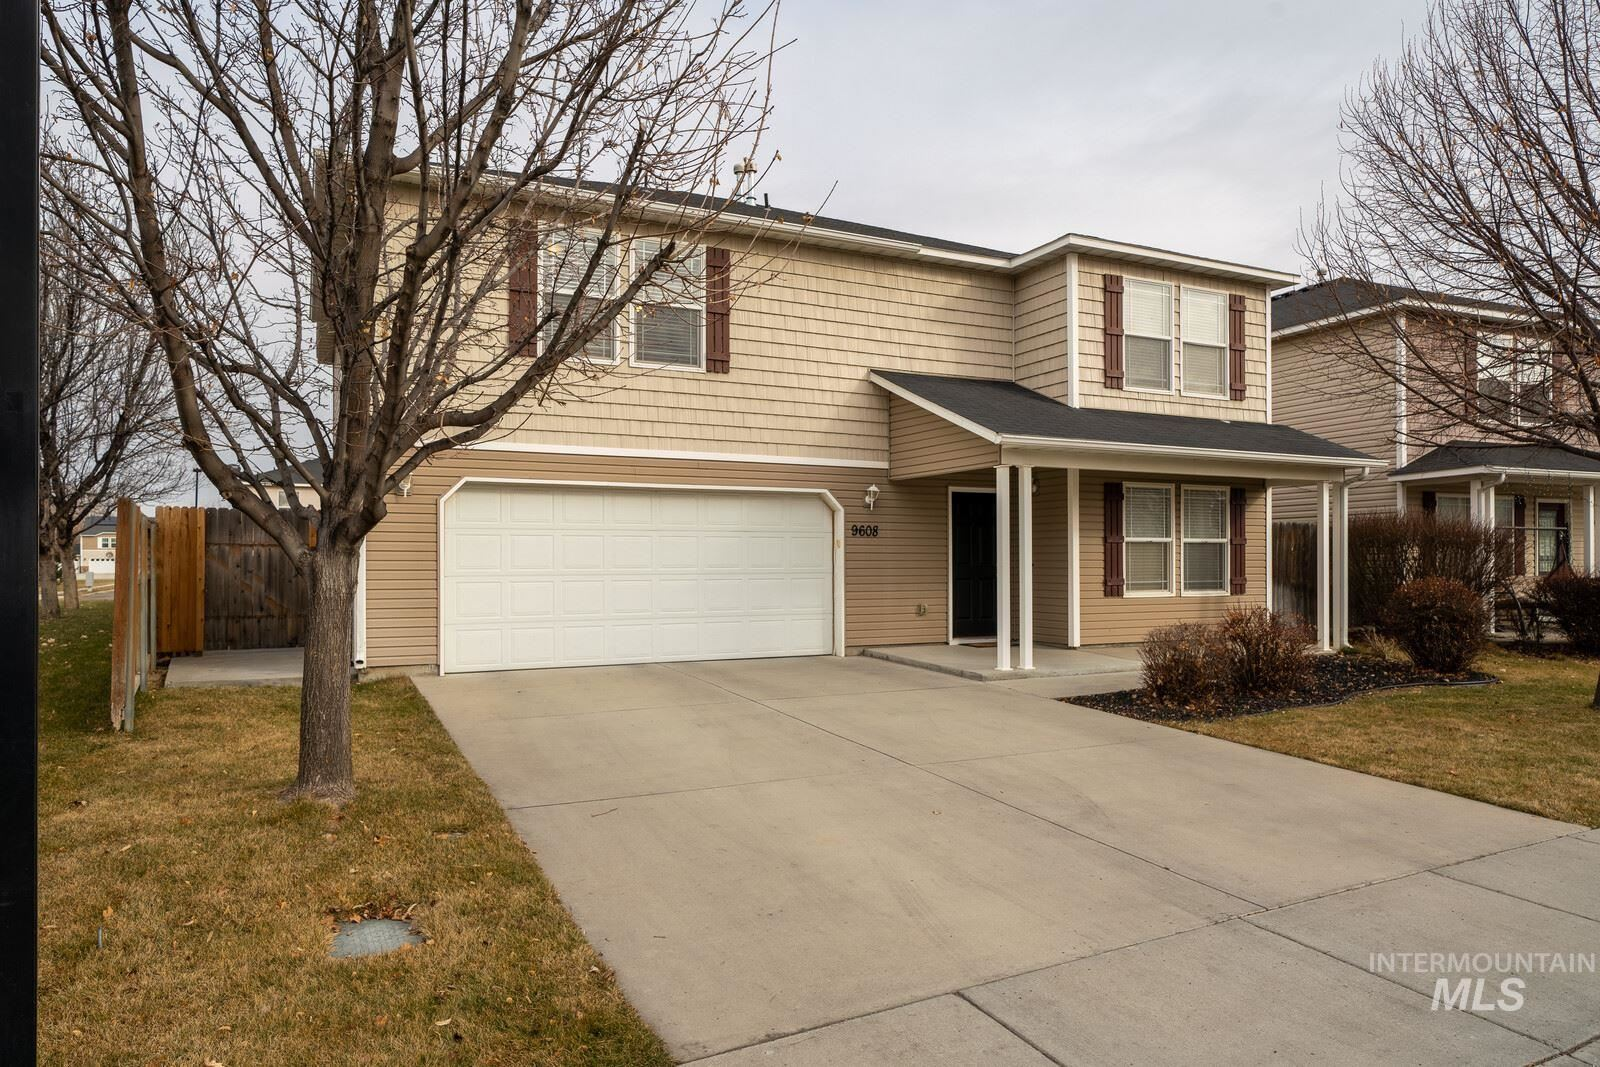 Photo of 9608 W Lillywood Dr, Boise, ID 83709 (MLS # 98791496)